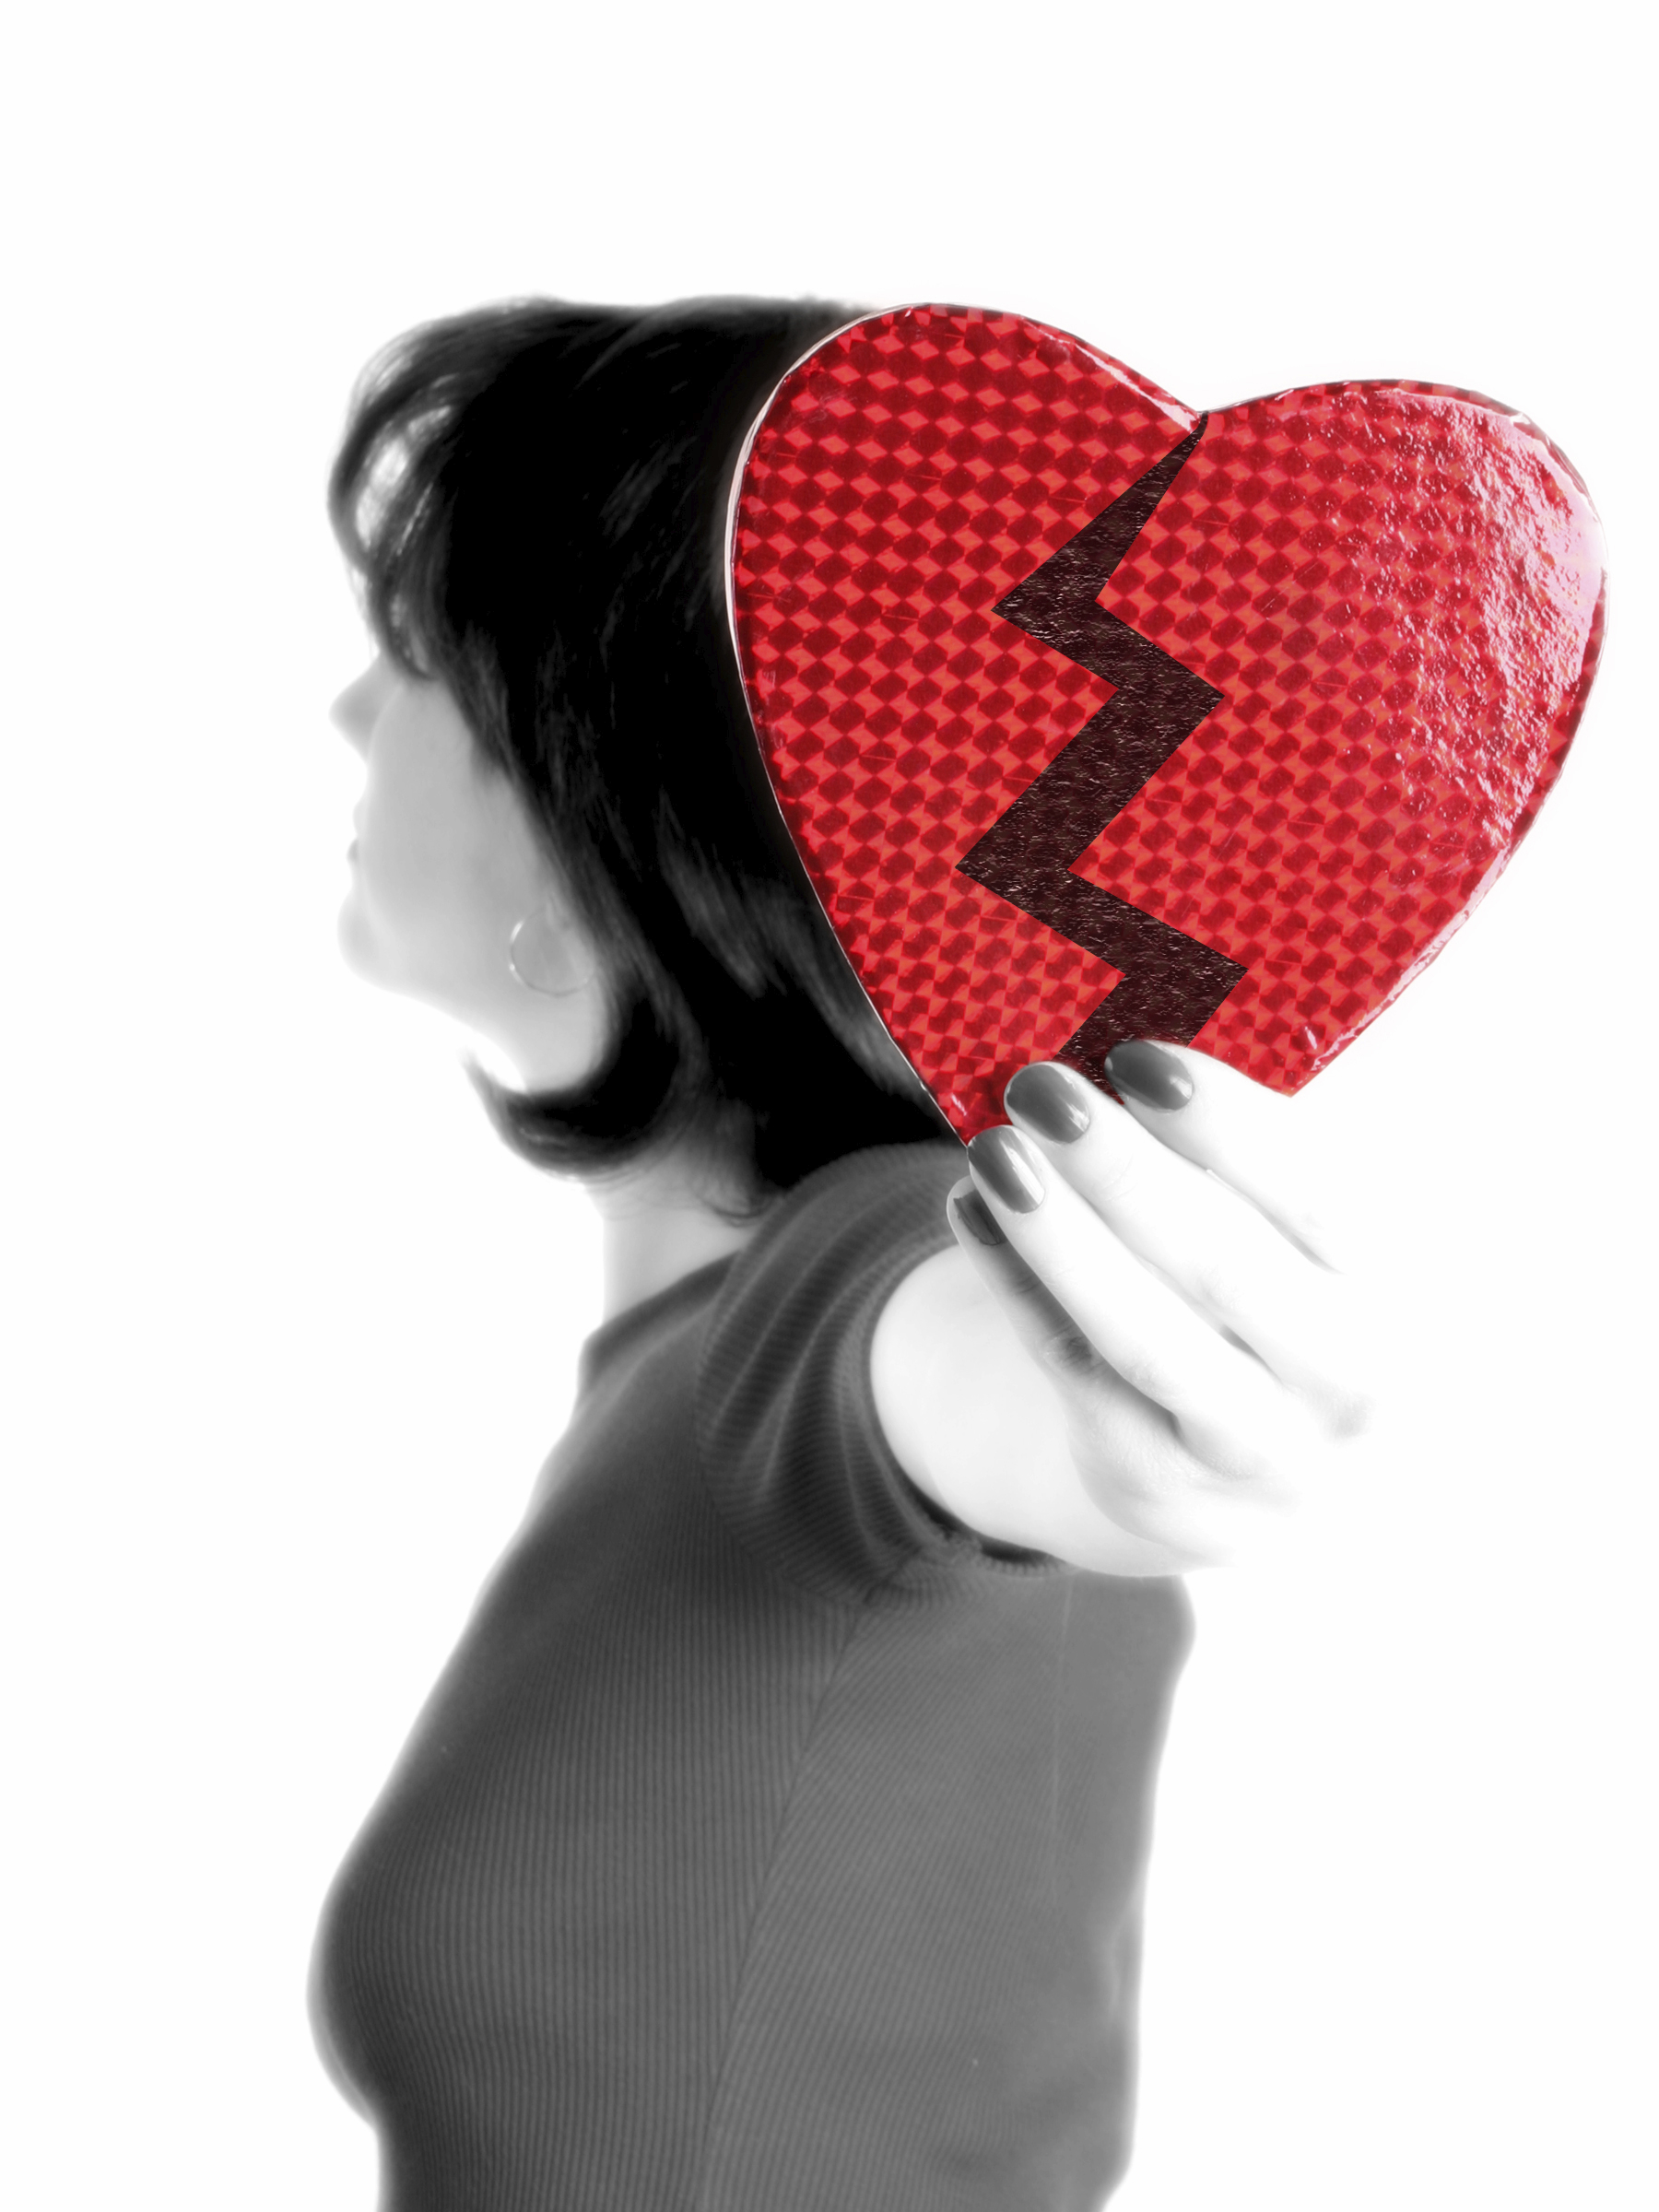 7 unhealthy signs youre love total control freak